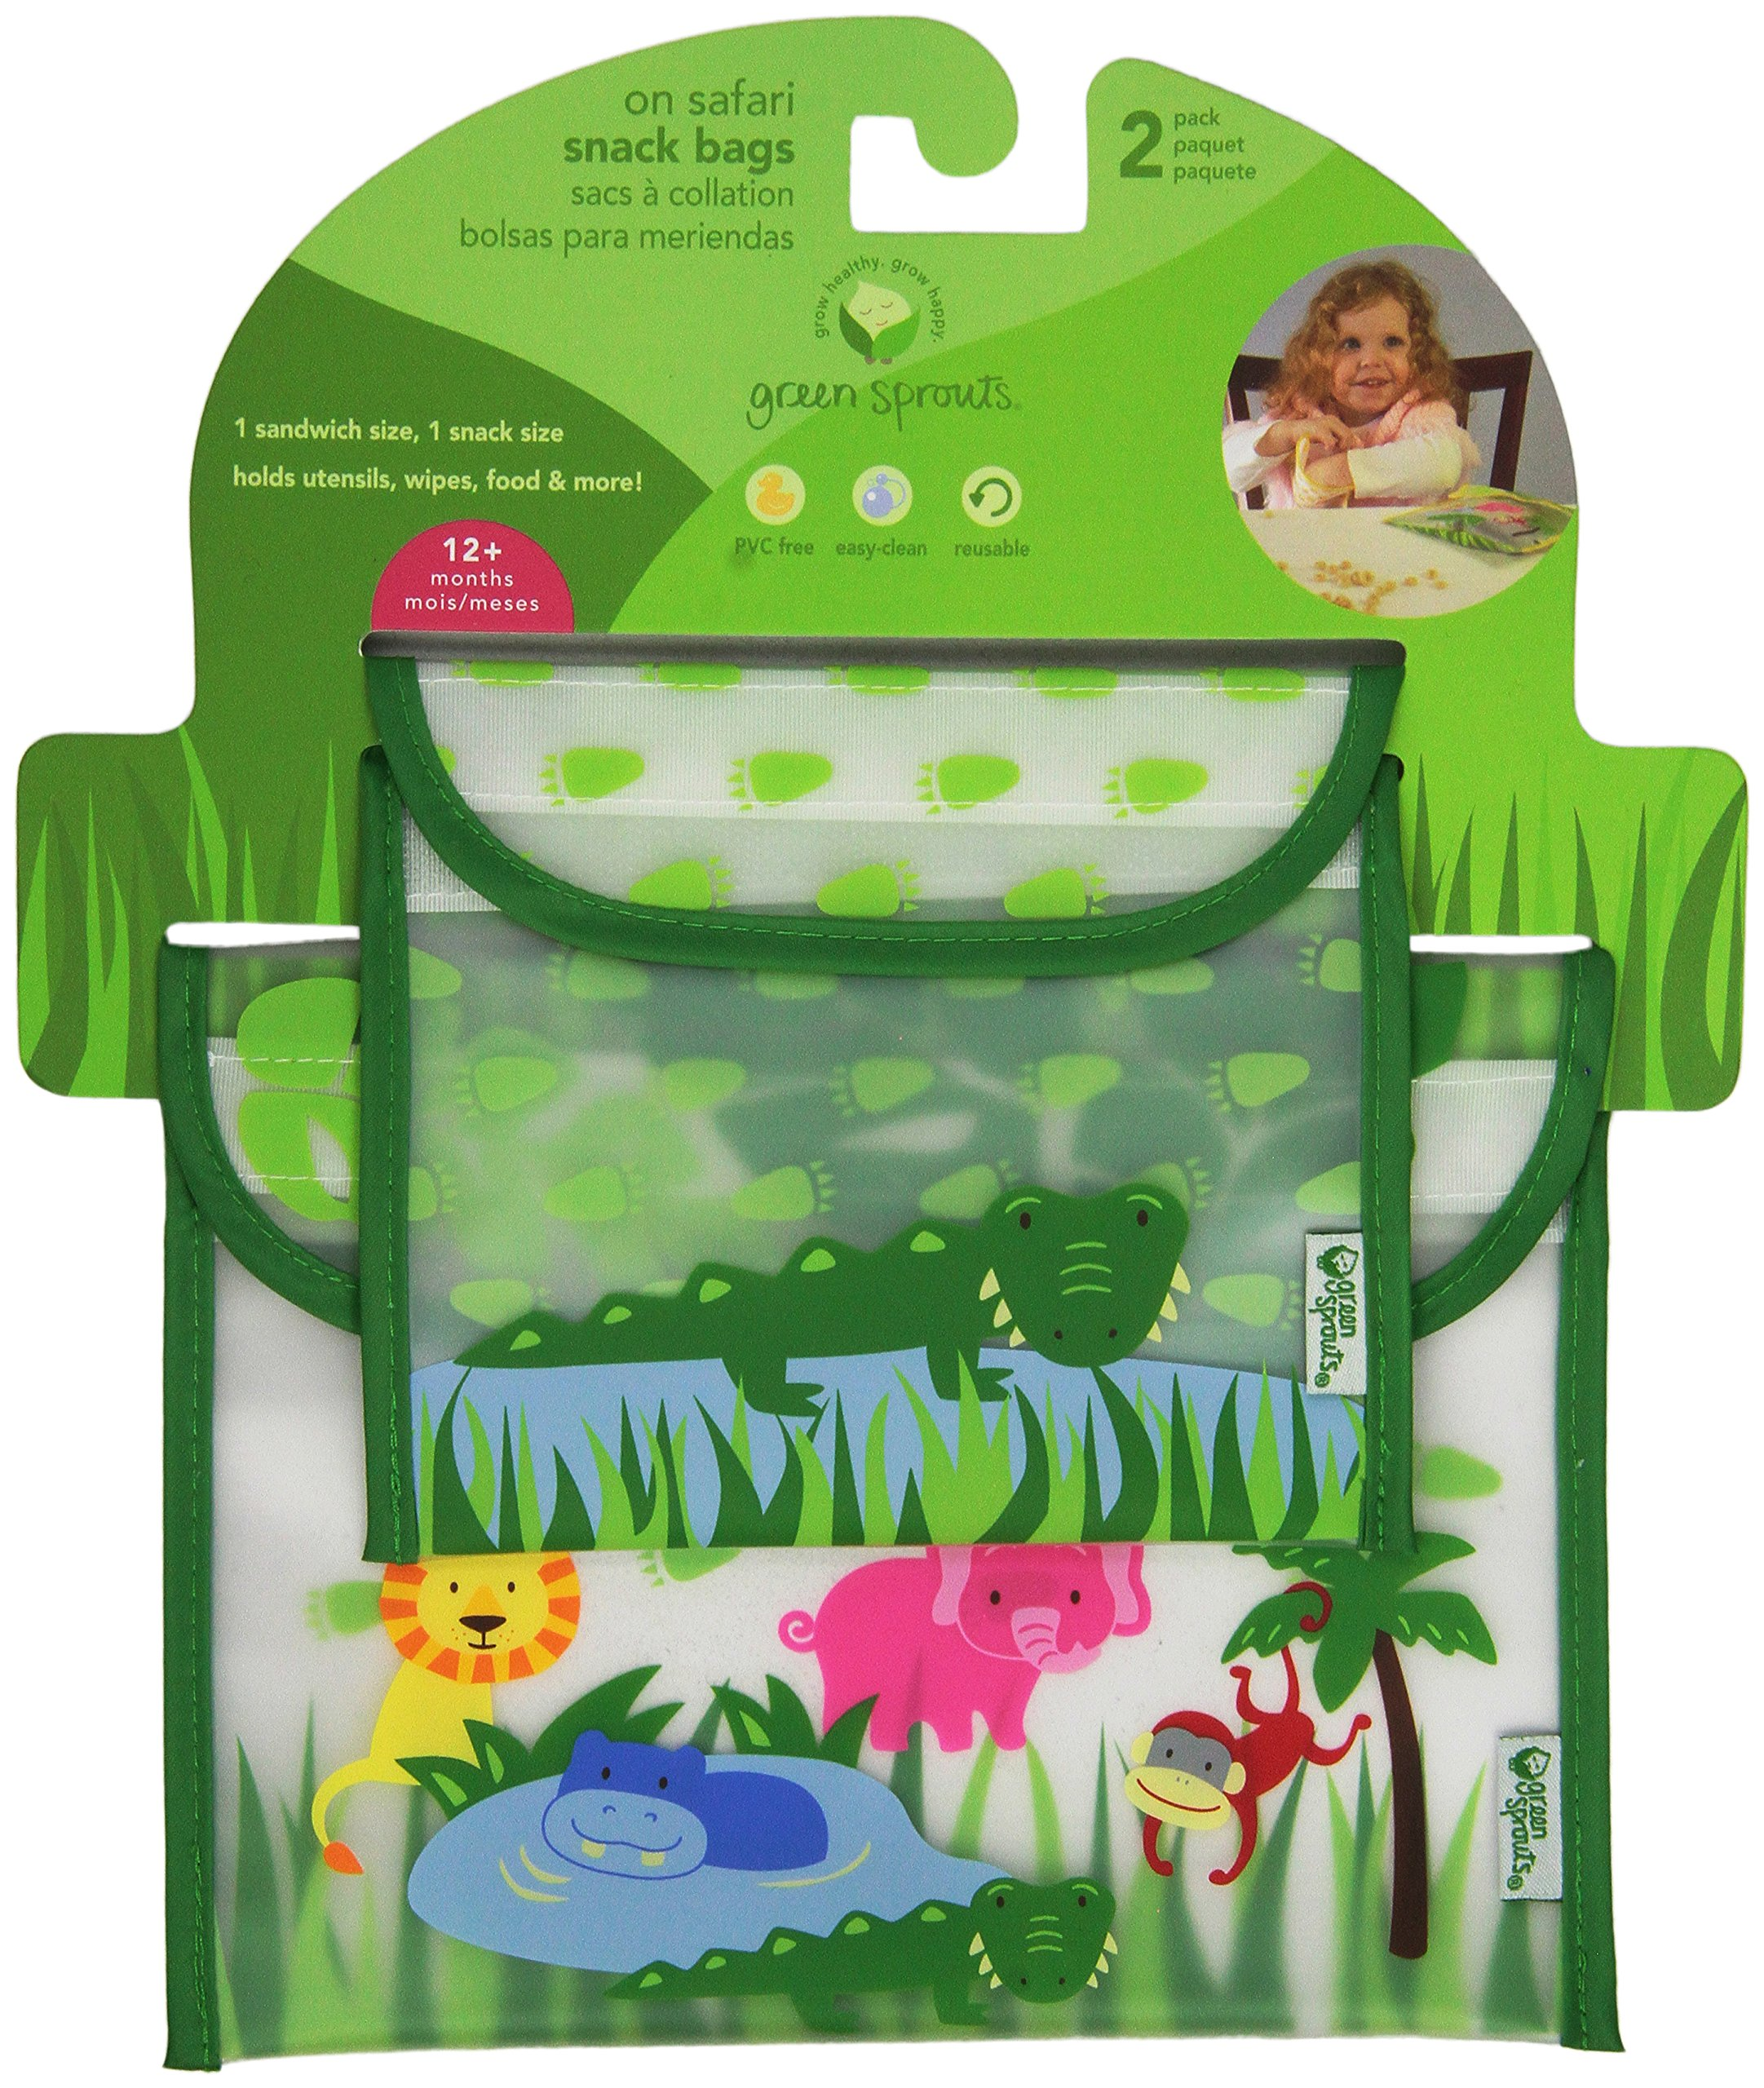 green sprouts 2 Count Safari Sandwich and Snack Bag, Green Alligator